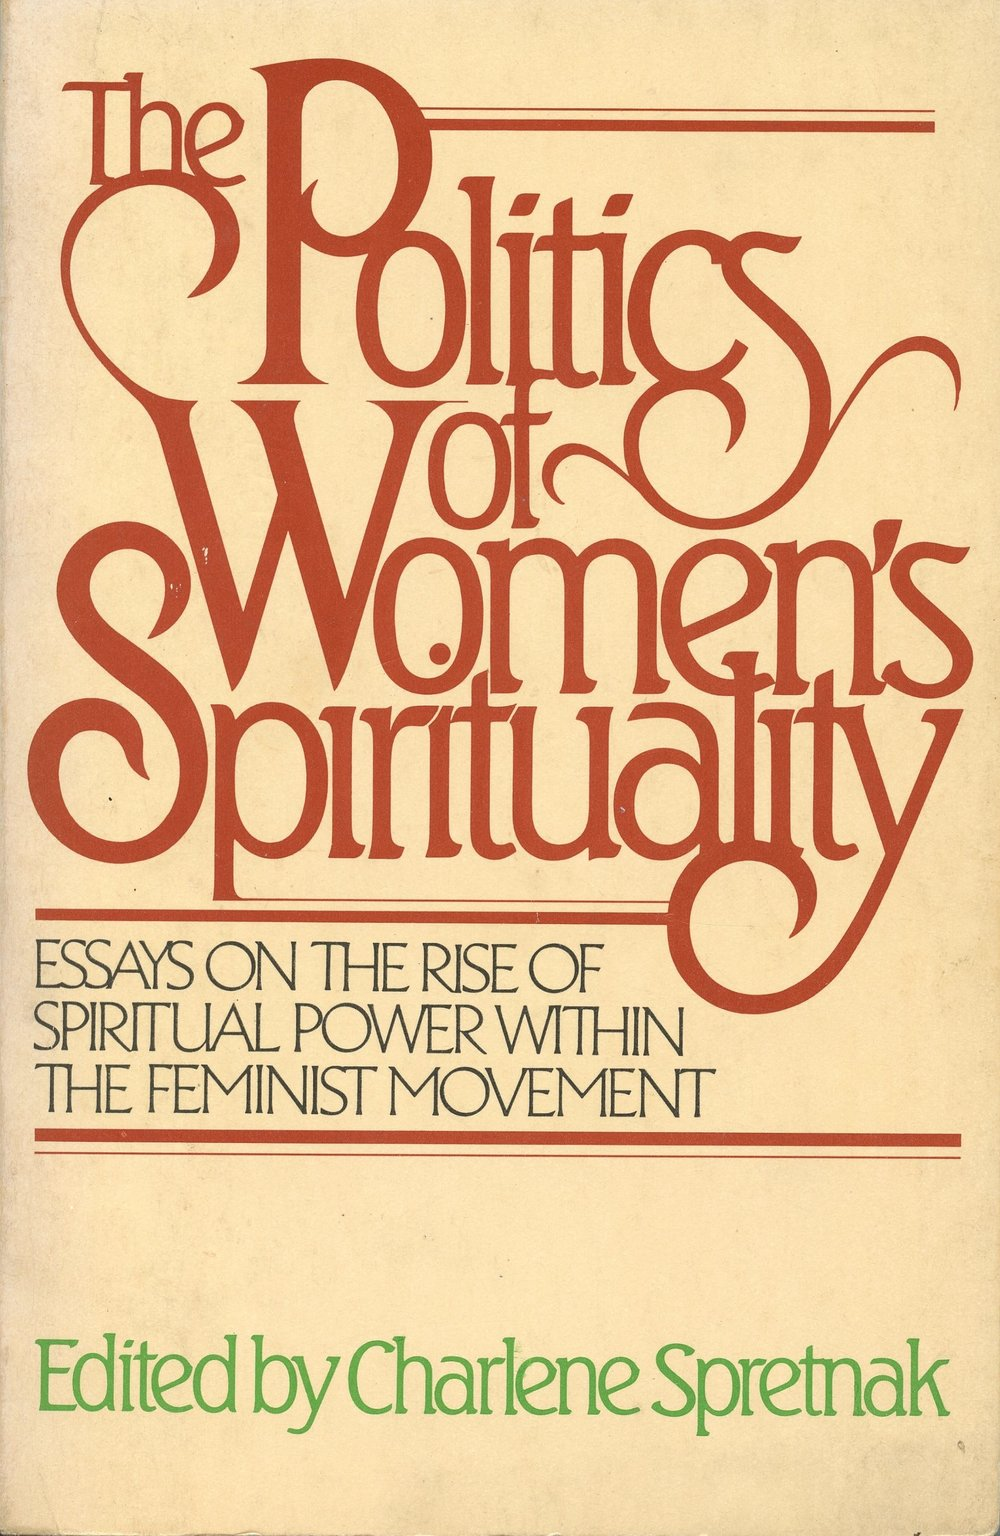 POLITICS OF WOMEN'S SPIRITUALITY